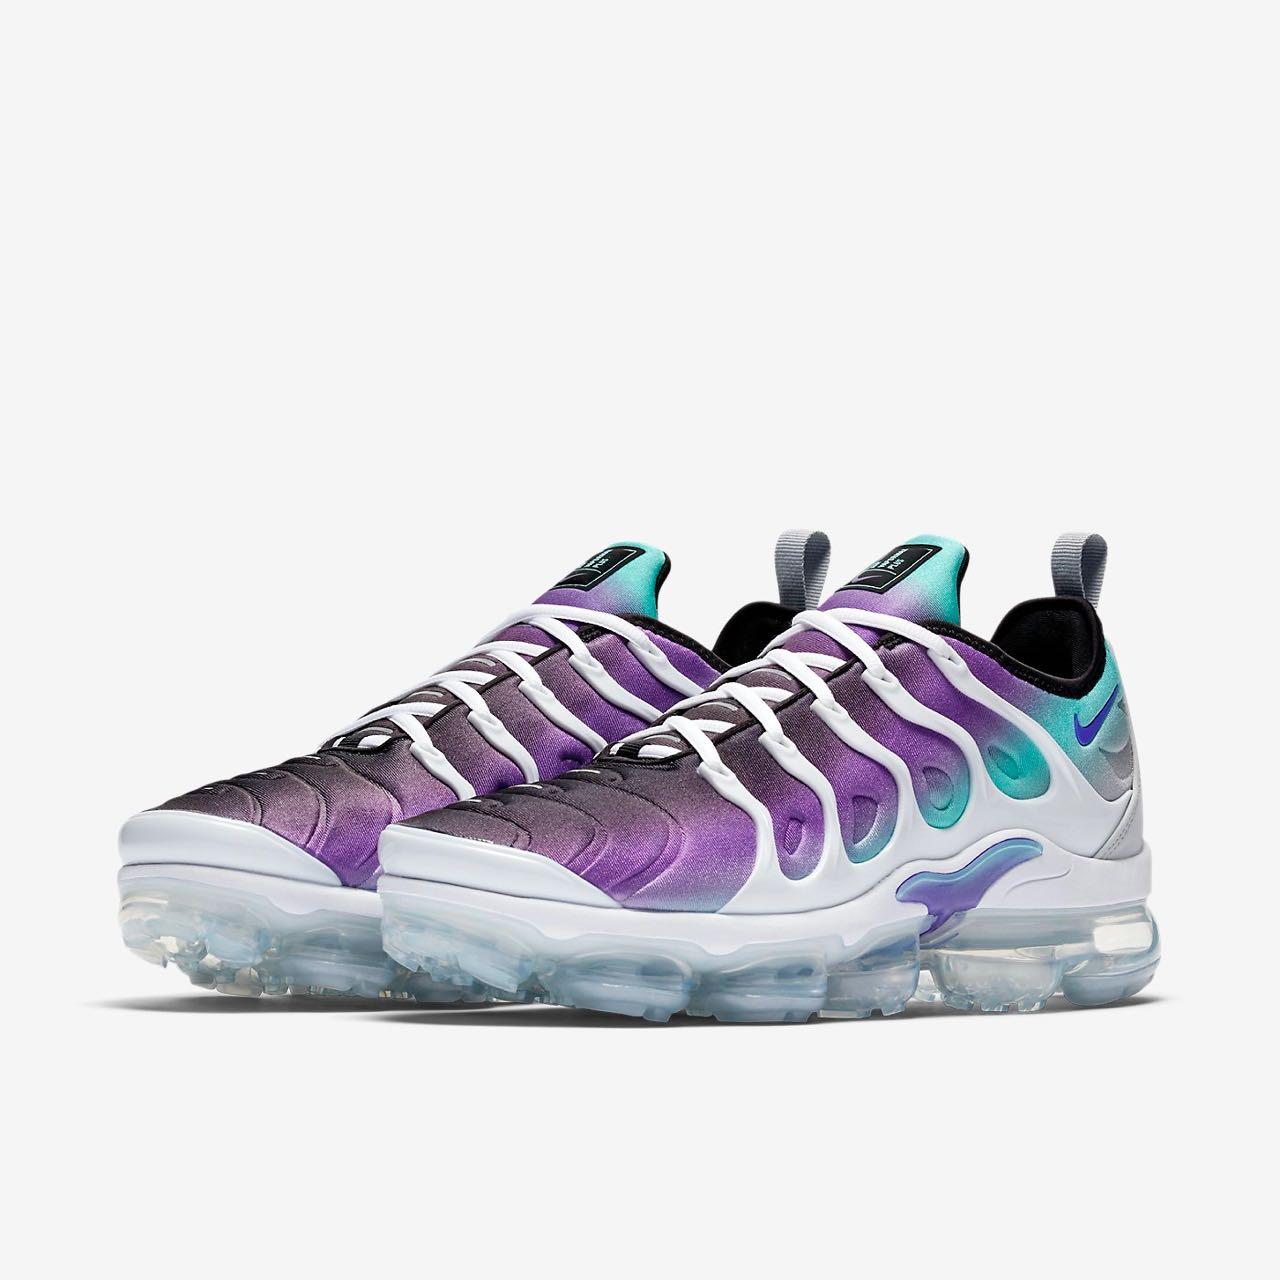 Le De Plus Sneaker Site Air Grape Vapormax Nike La CQBsxhdrto